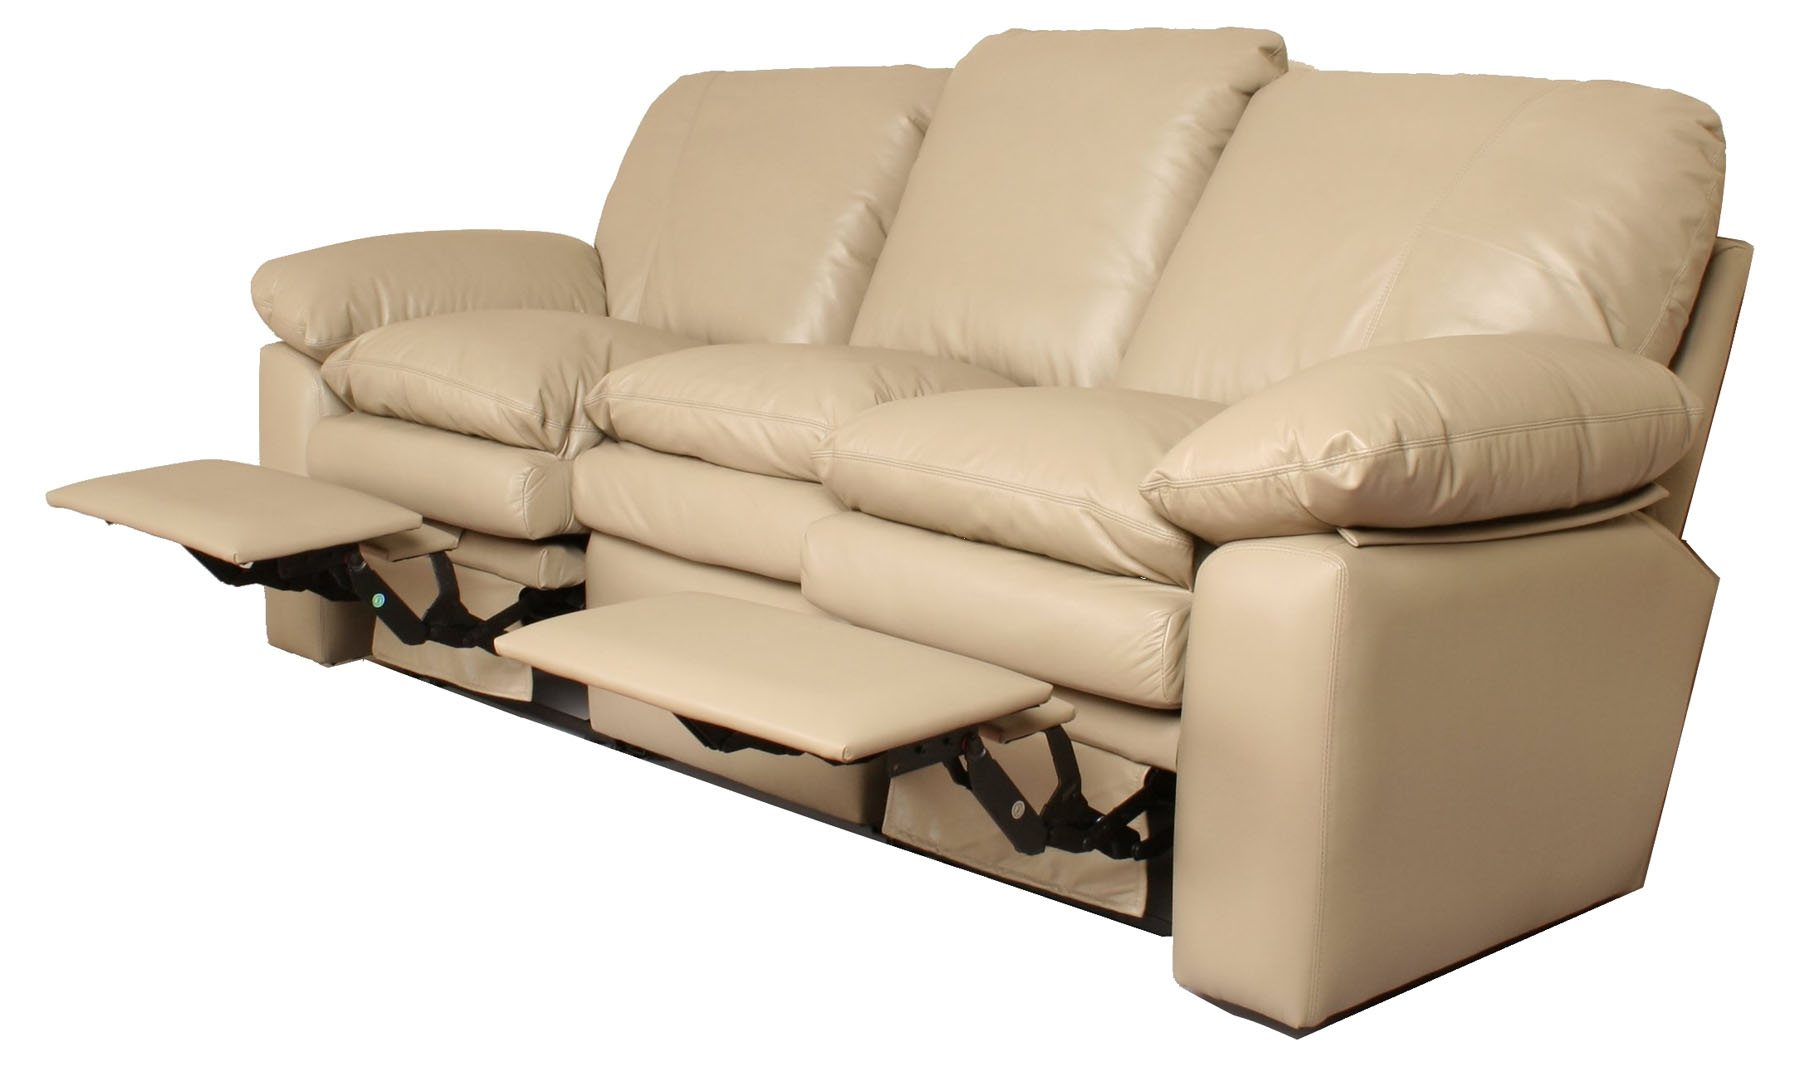 Carrera reclining leather sofa Leather sofa and loveseat recliner